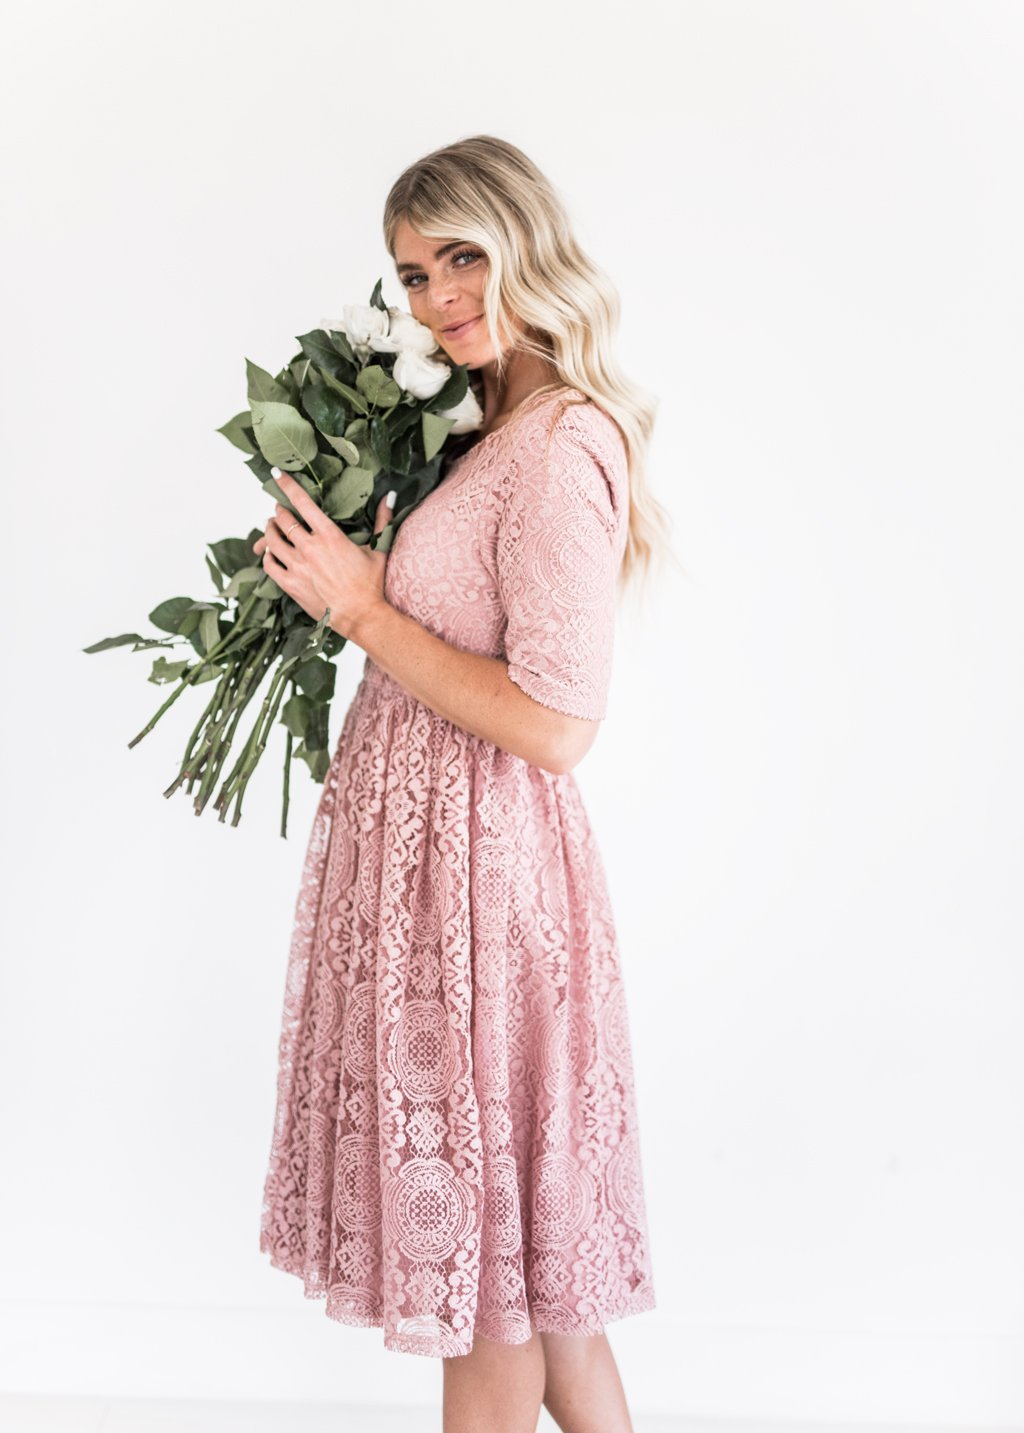 Lace dress rose  Erin Lace Dress in Rose in   Well dressed  Pinterest  Dresses